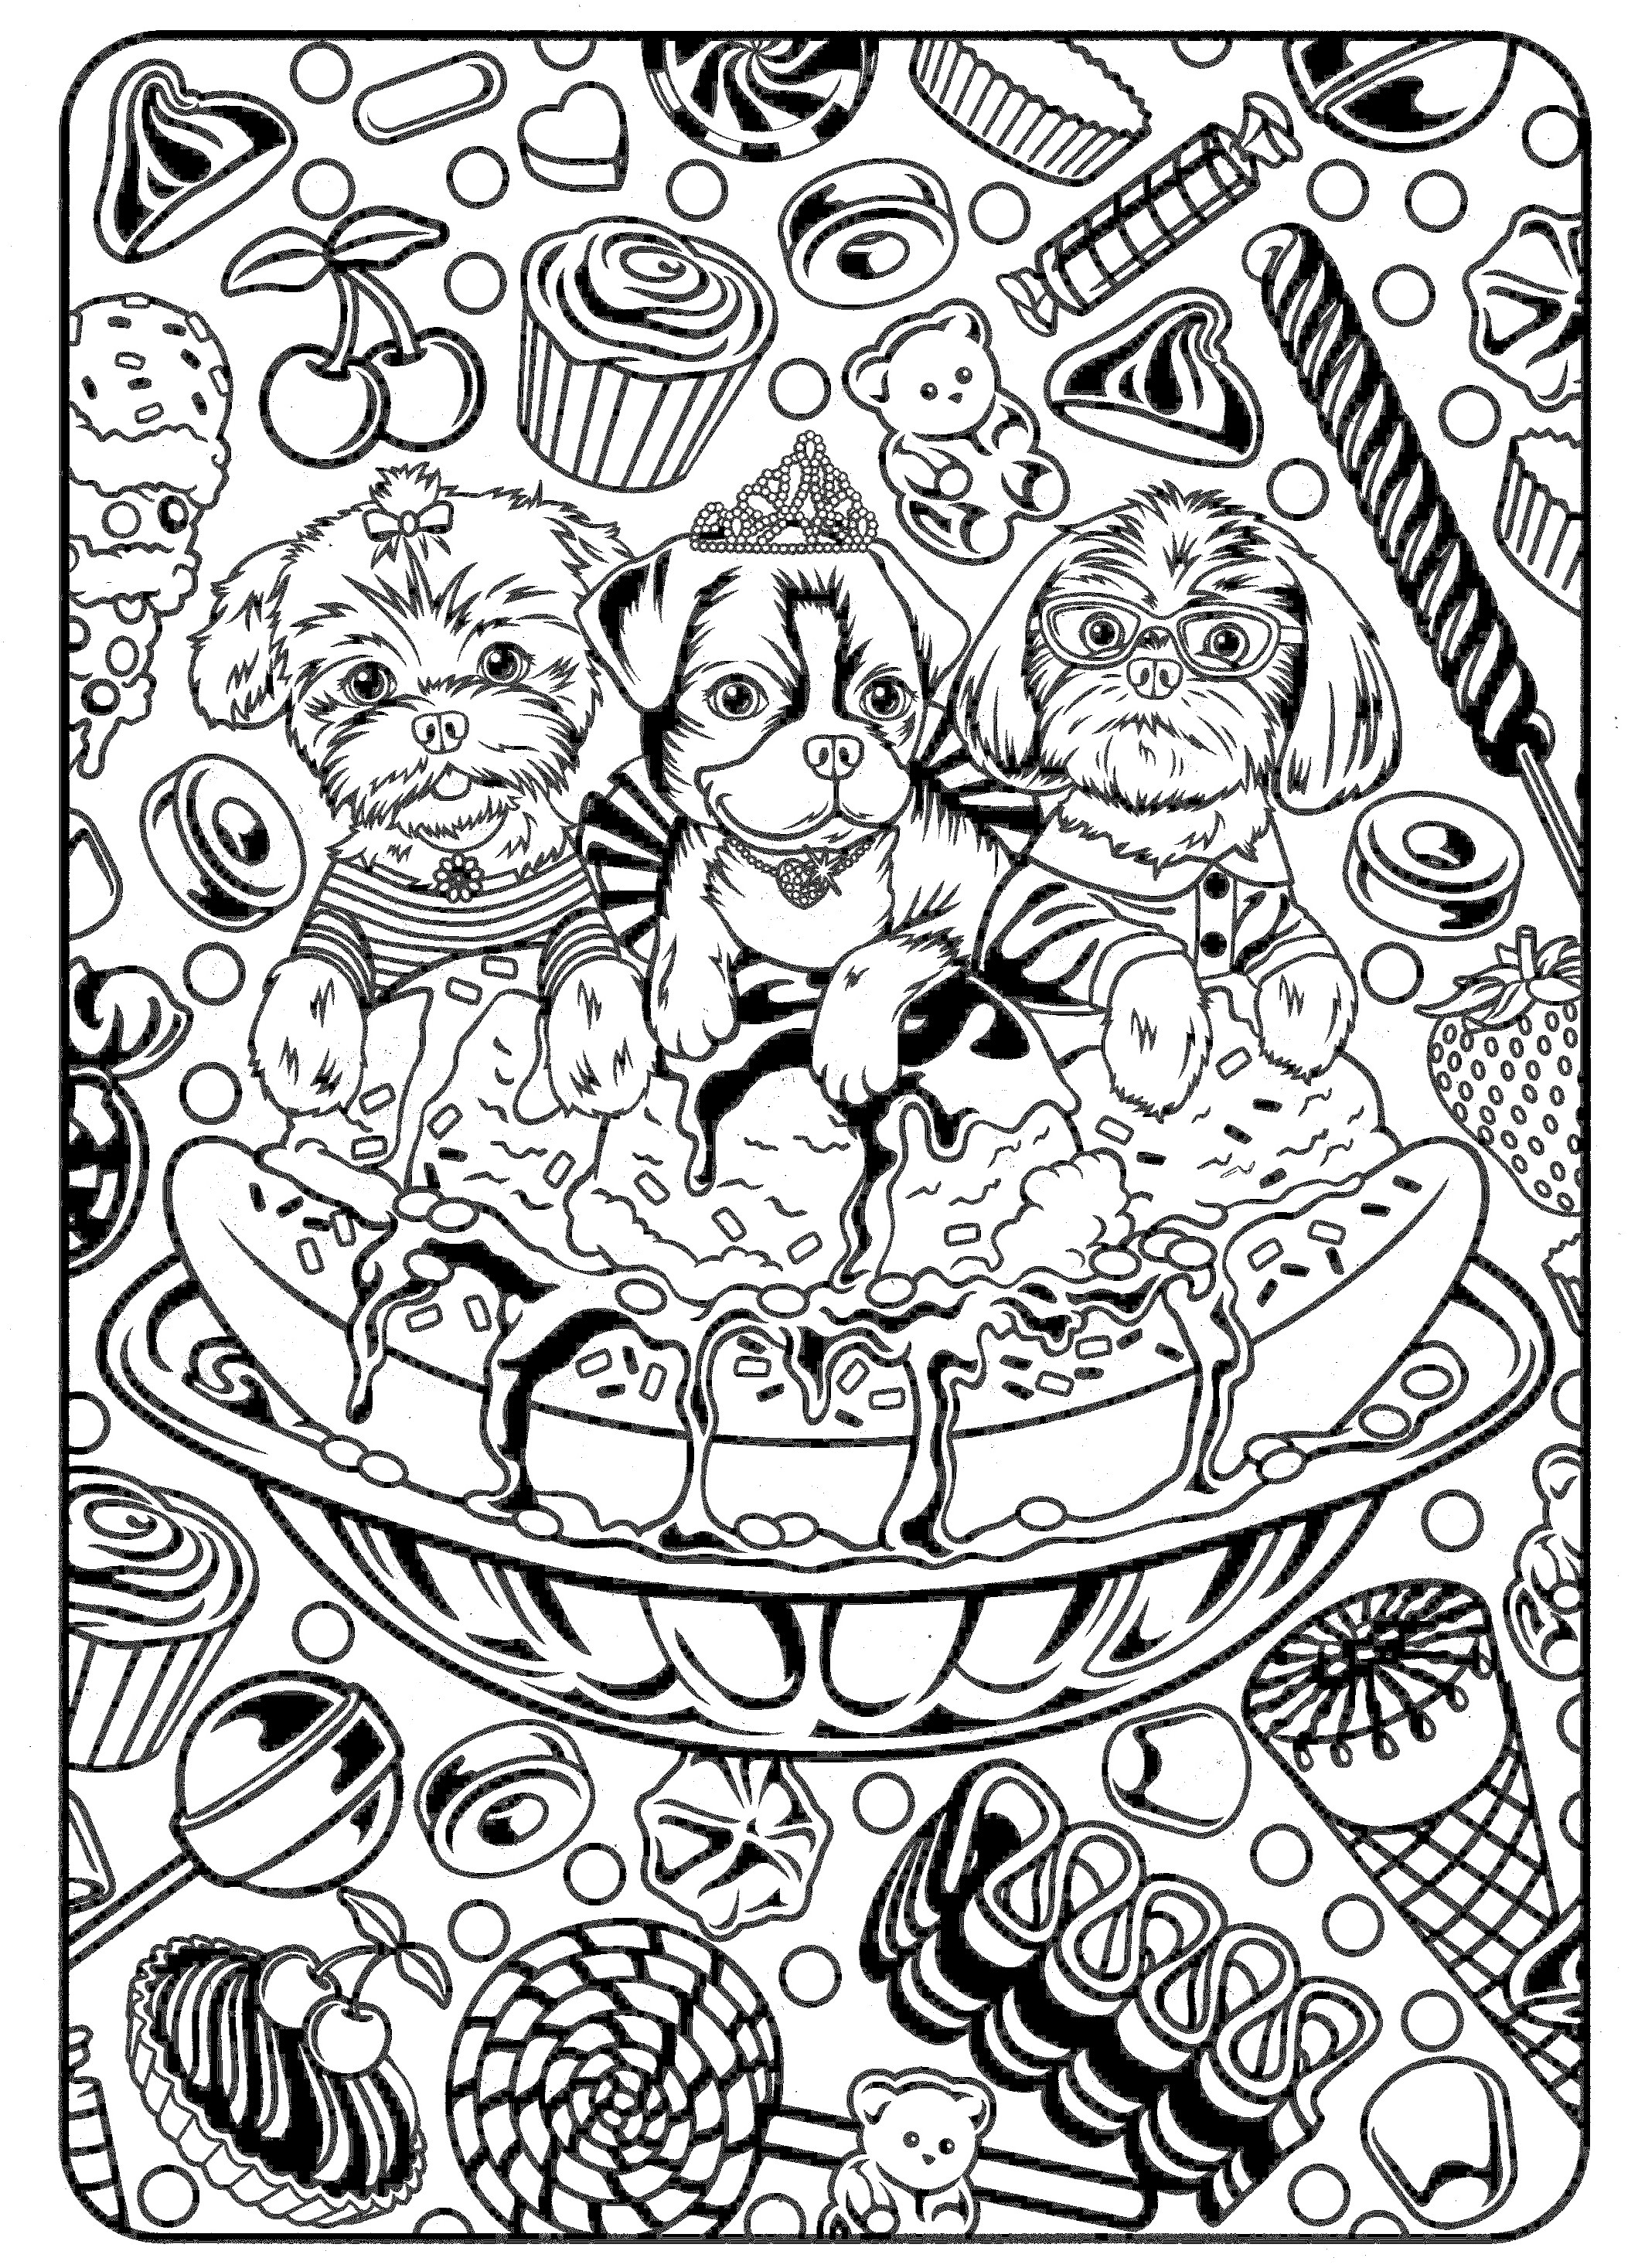 coloring pictures printable cute coloring pages best coloring pages for kids pictures coloring printable